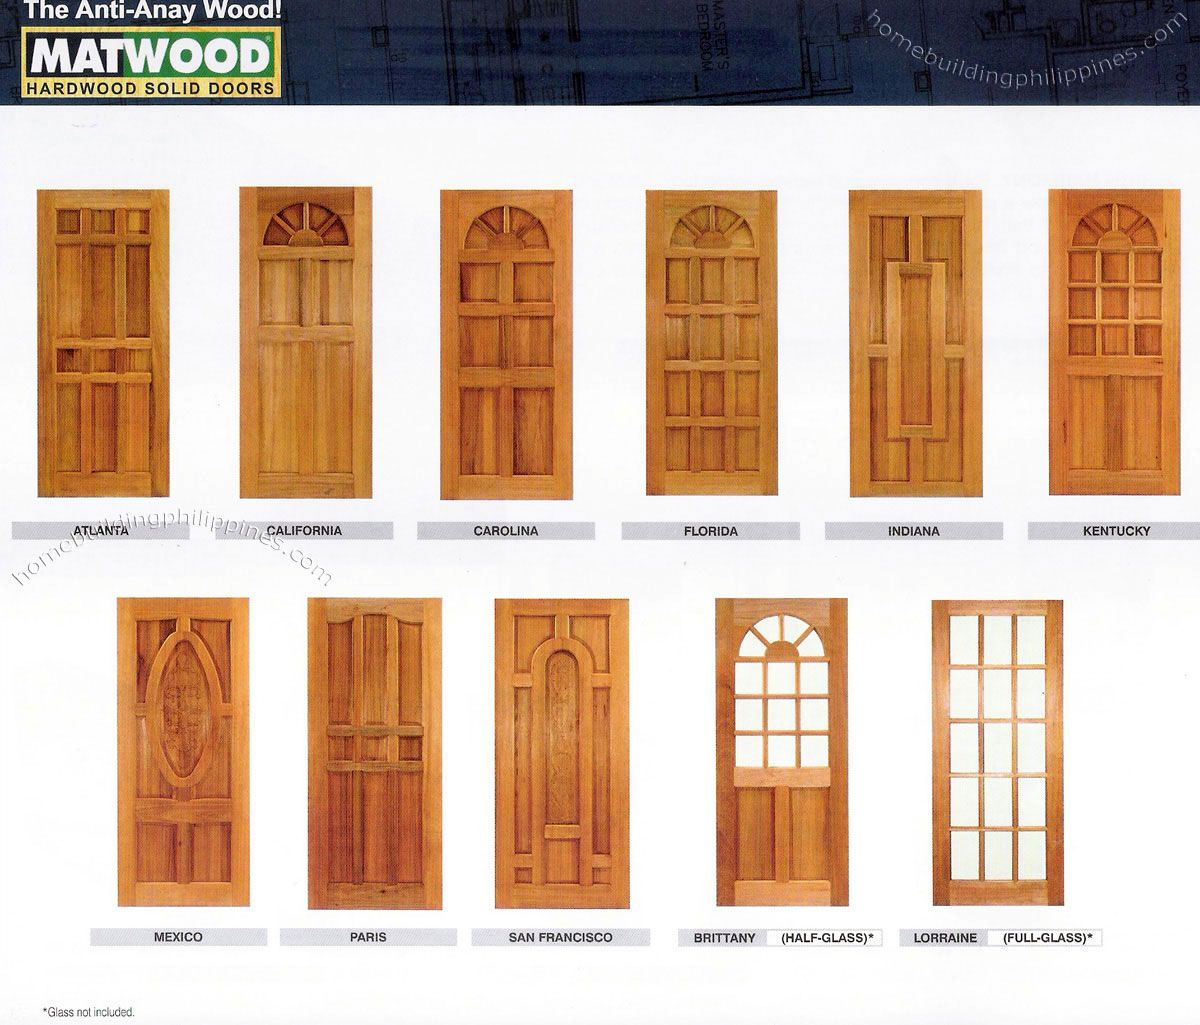 wooden front door design in philippines seeking to obtain tips about working with wood http - Doors Design For Home